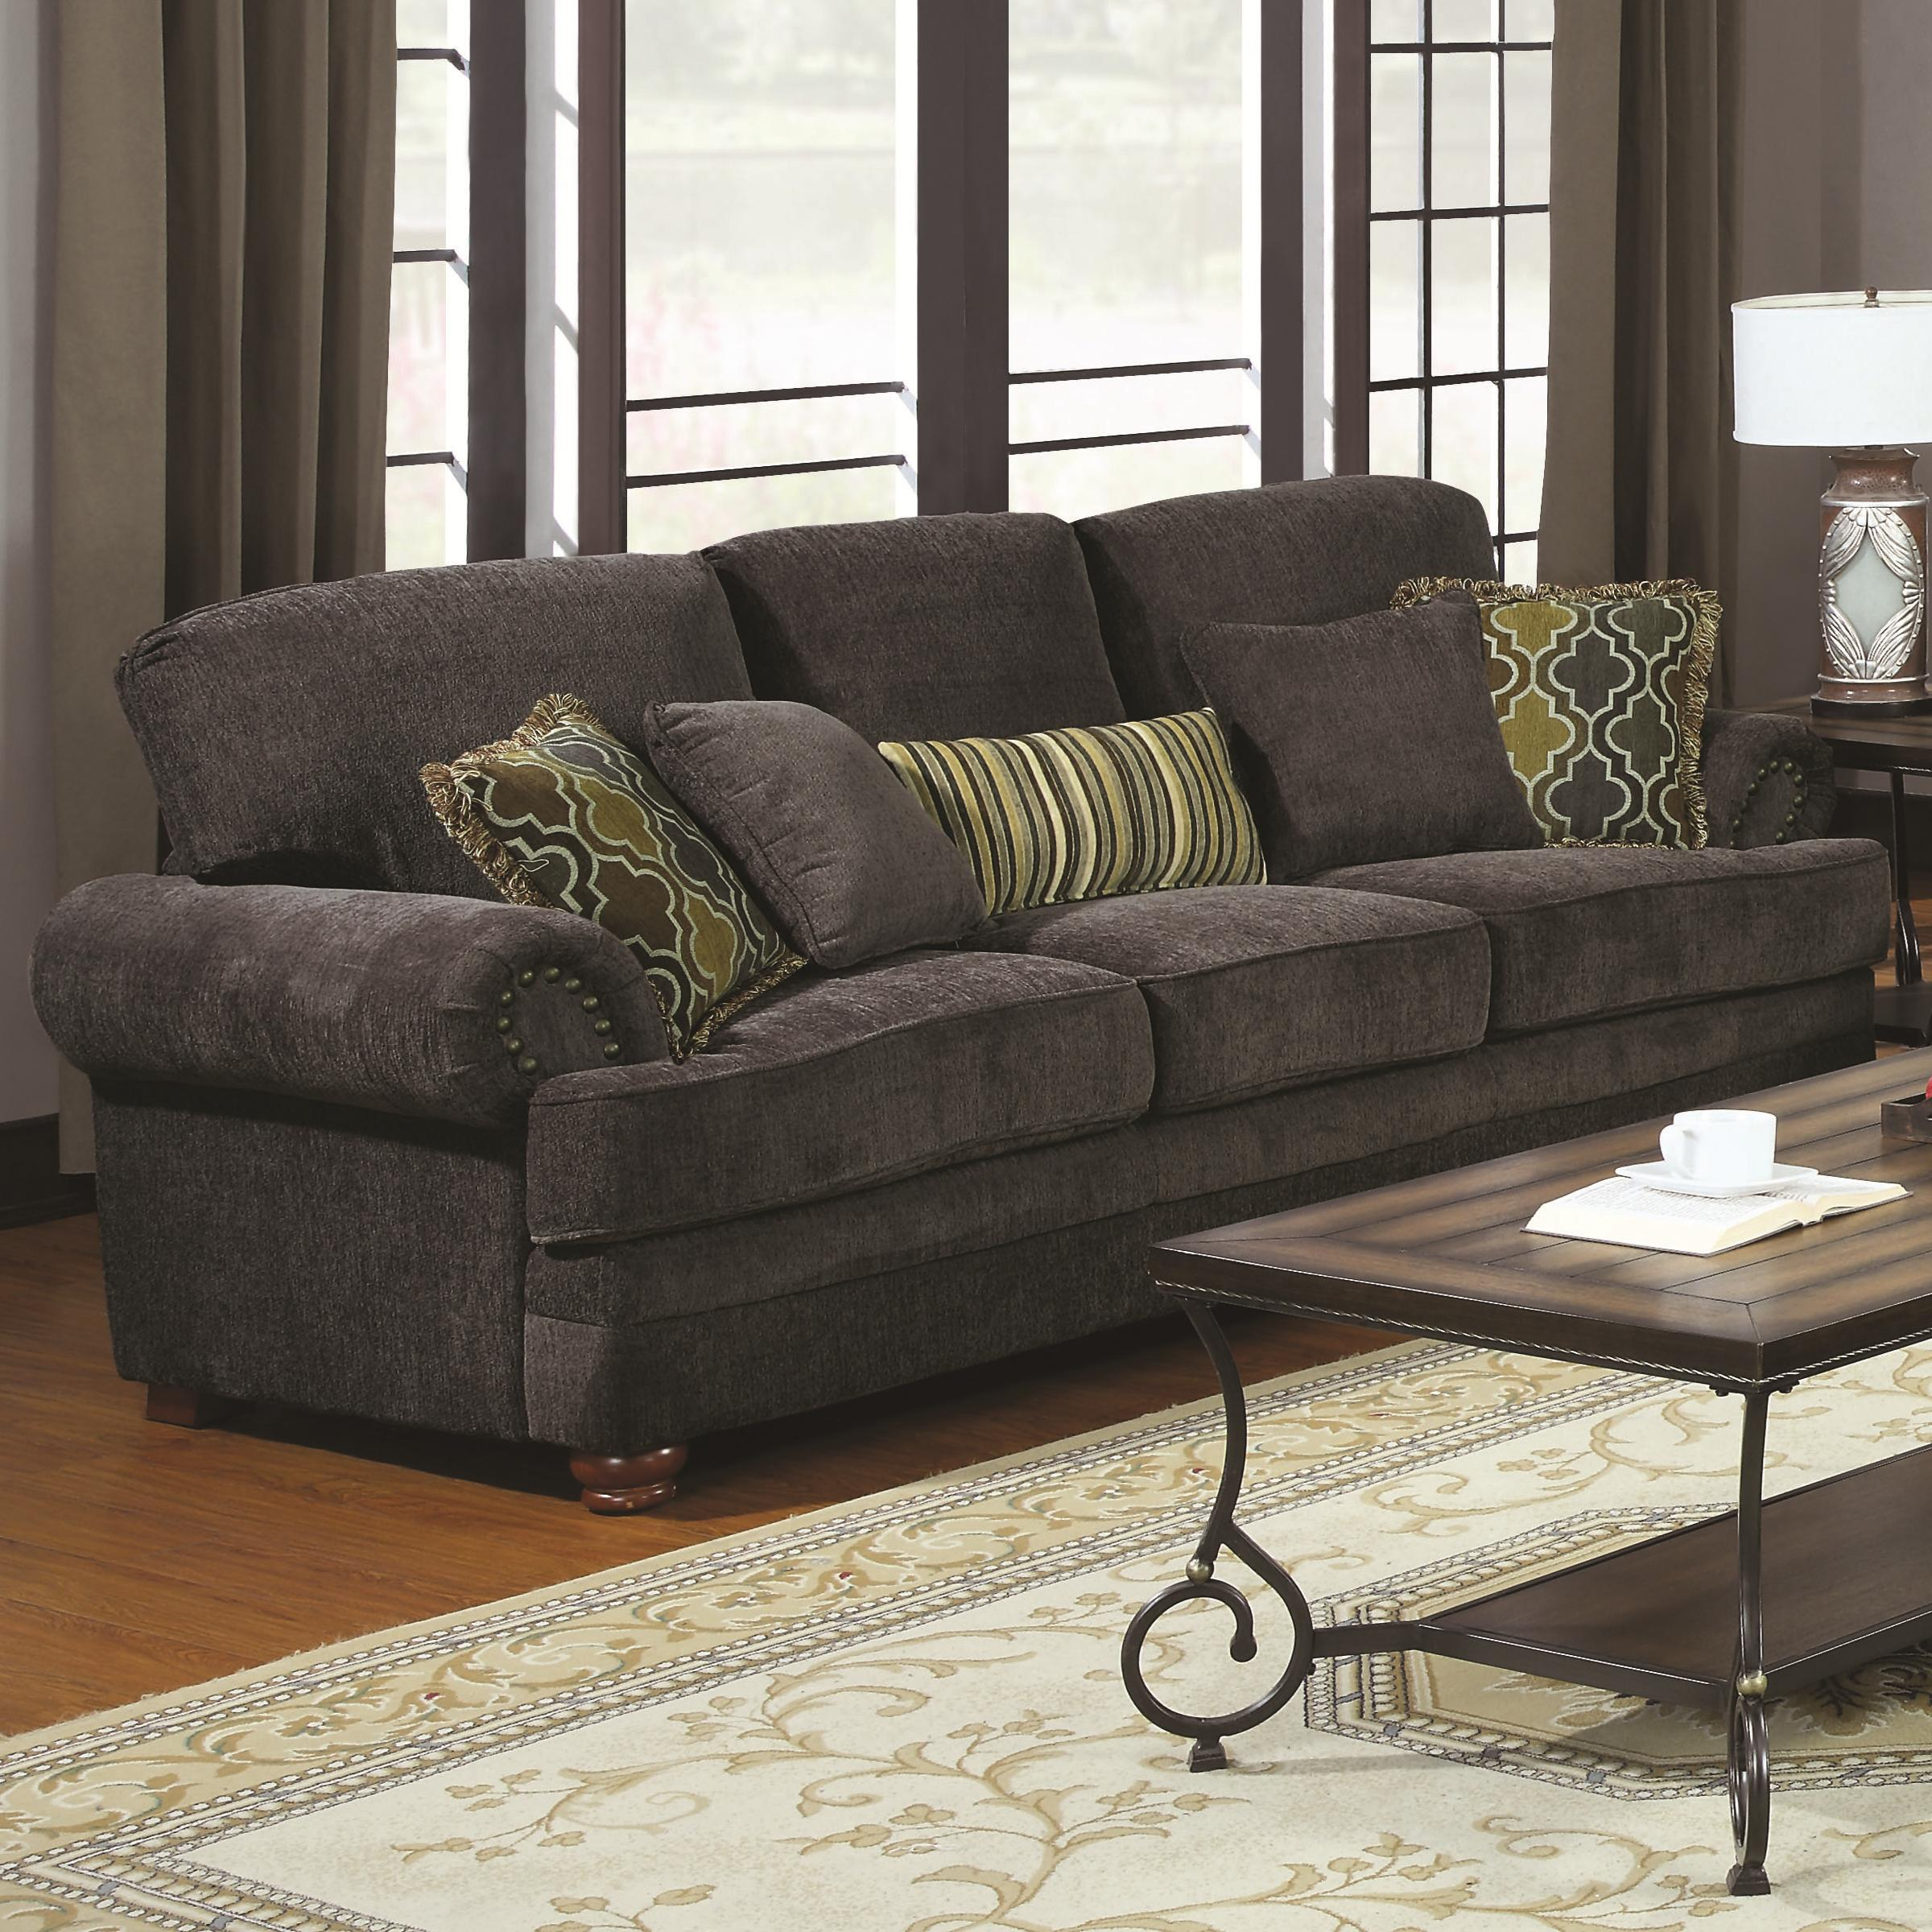 Coaster Colton Traditional Sofa With Elegant Design Style Furniture Superstore Rochester Mn